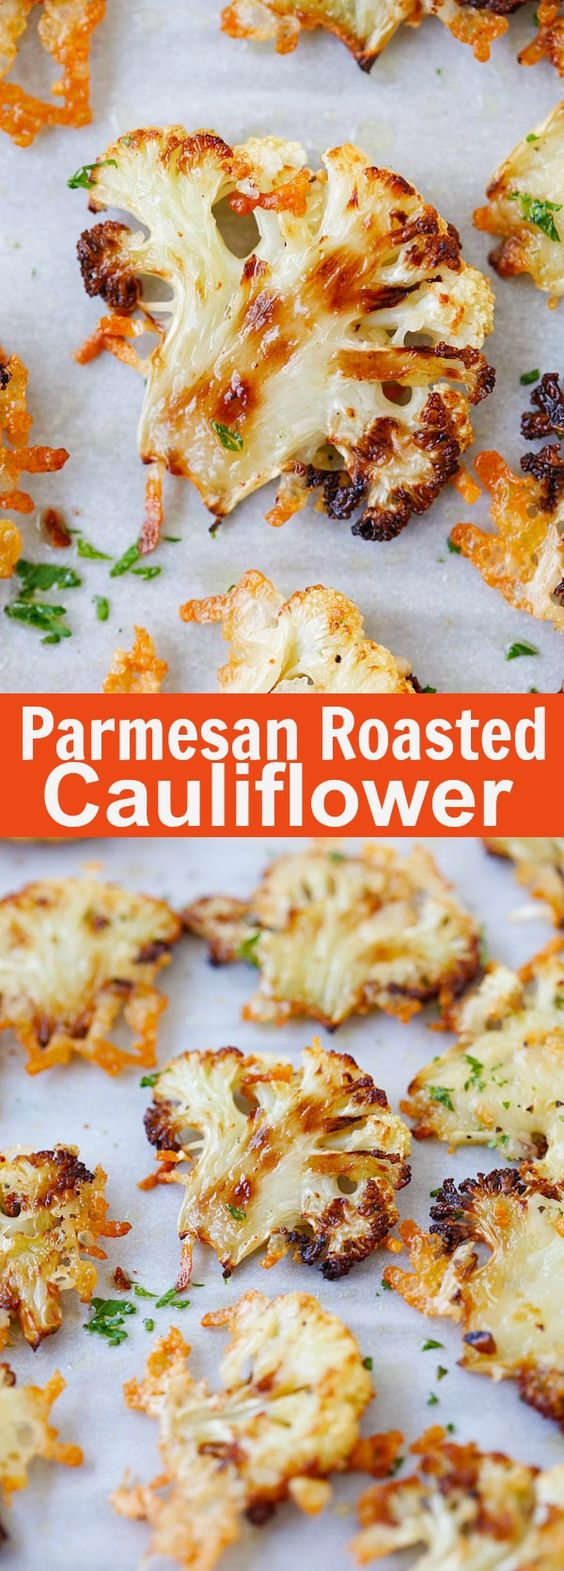 Parmesan Roasted Cauliflower #parmesan #roasted #cauliflower #roastedcauliflower #veganrecipes #vegetarianrecipes #vegetablerecipes